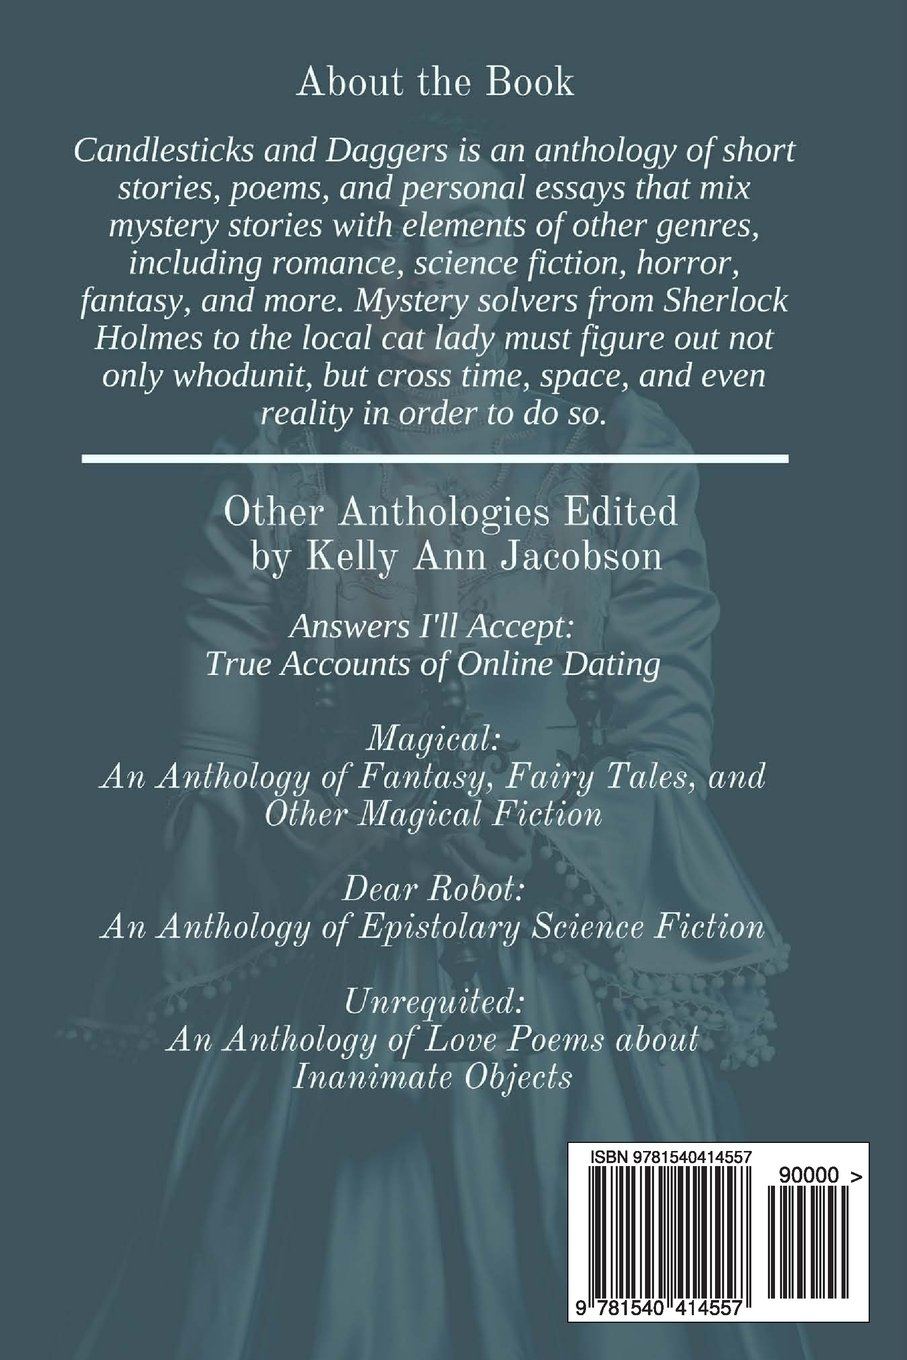 Best     Poetry anthology ideas on Pinterest   Poems on beauty     Tomato Slices is an anthology of short stories  essays  poems  recipes  and